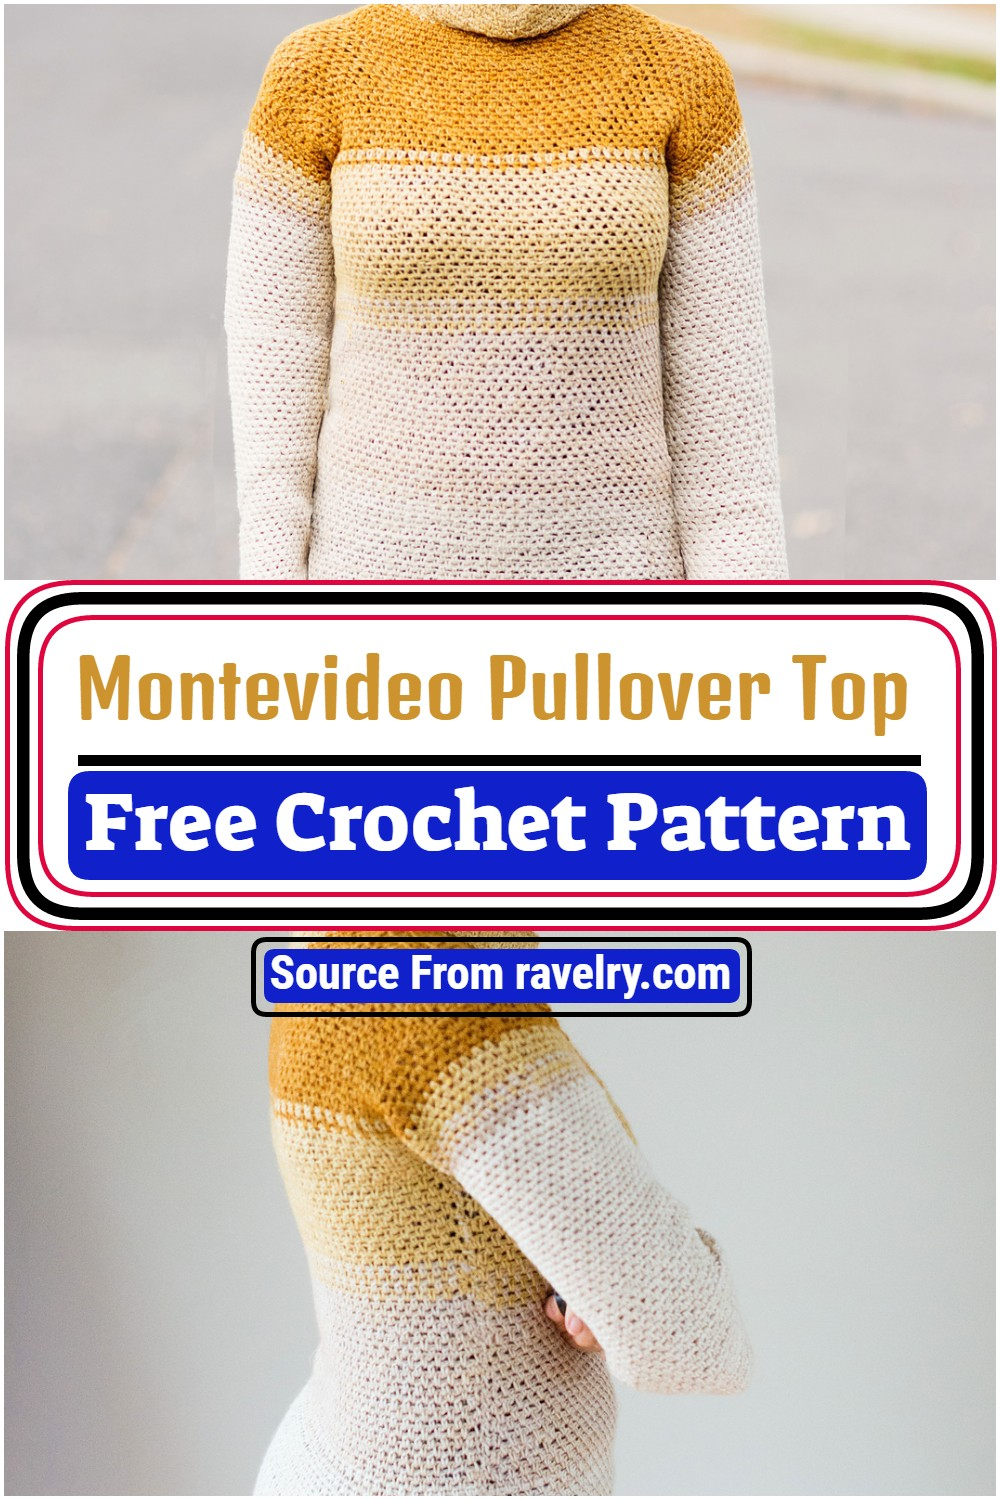 Montevideo Pullover Top Pattern